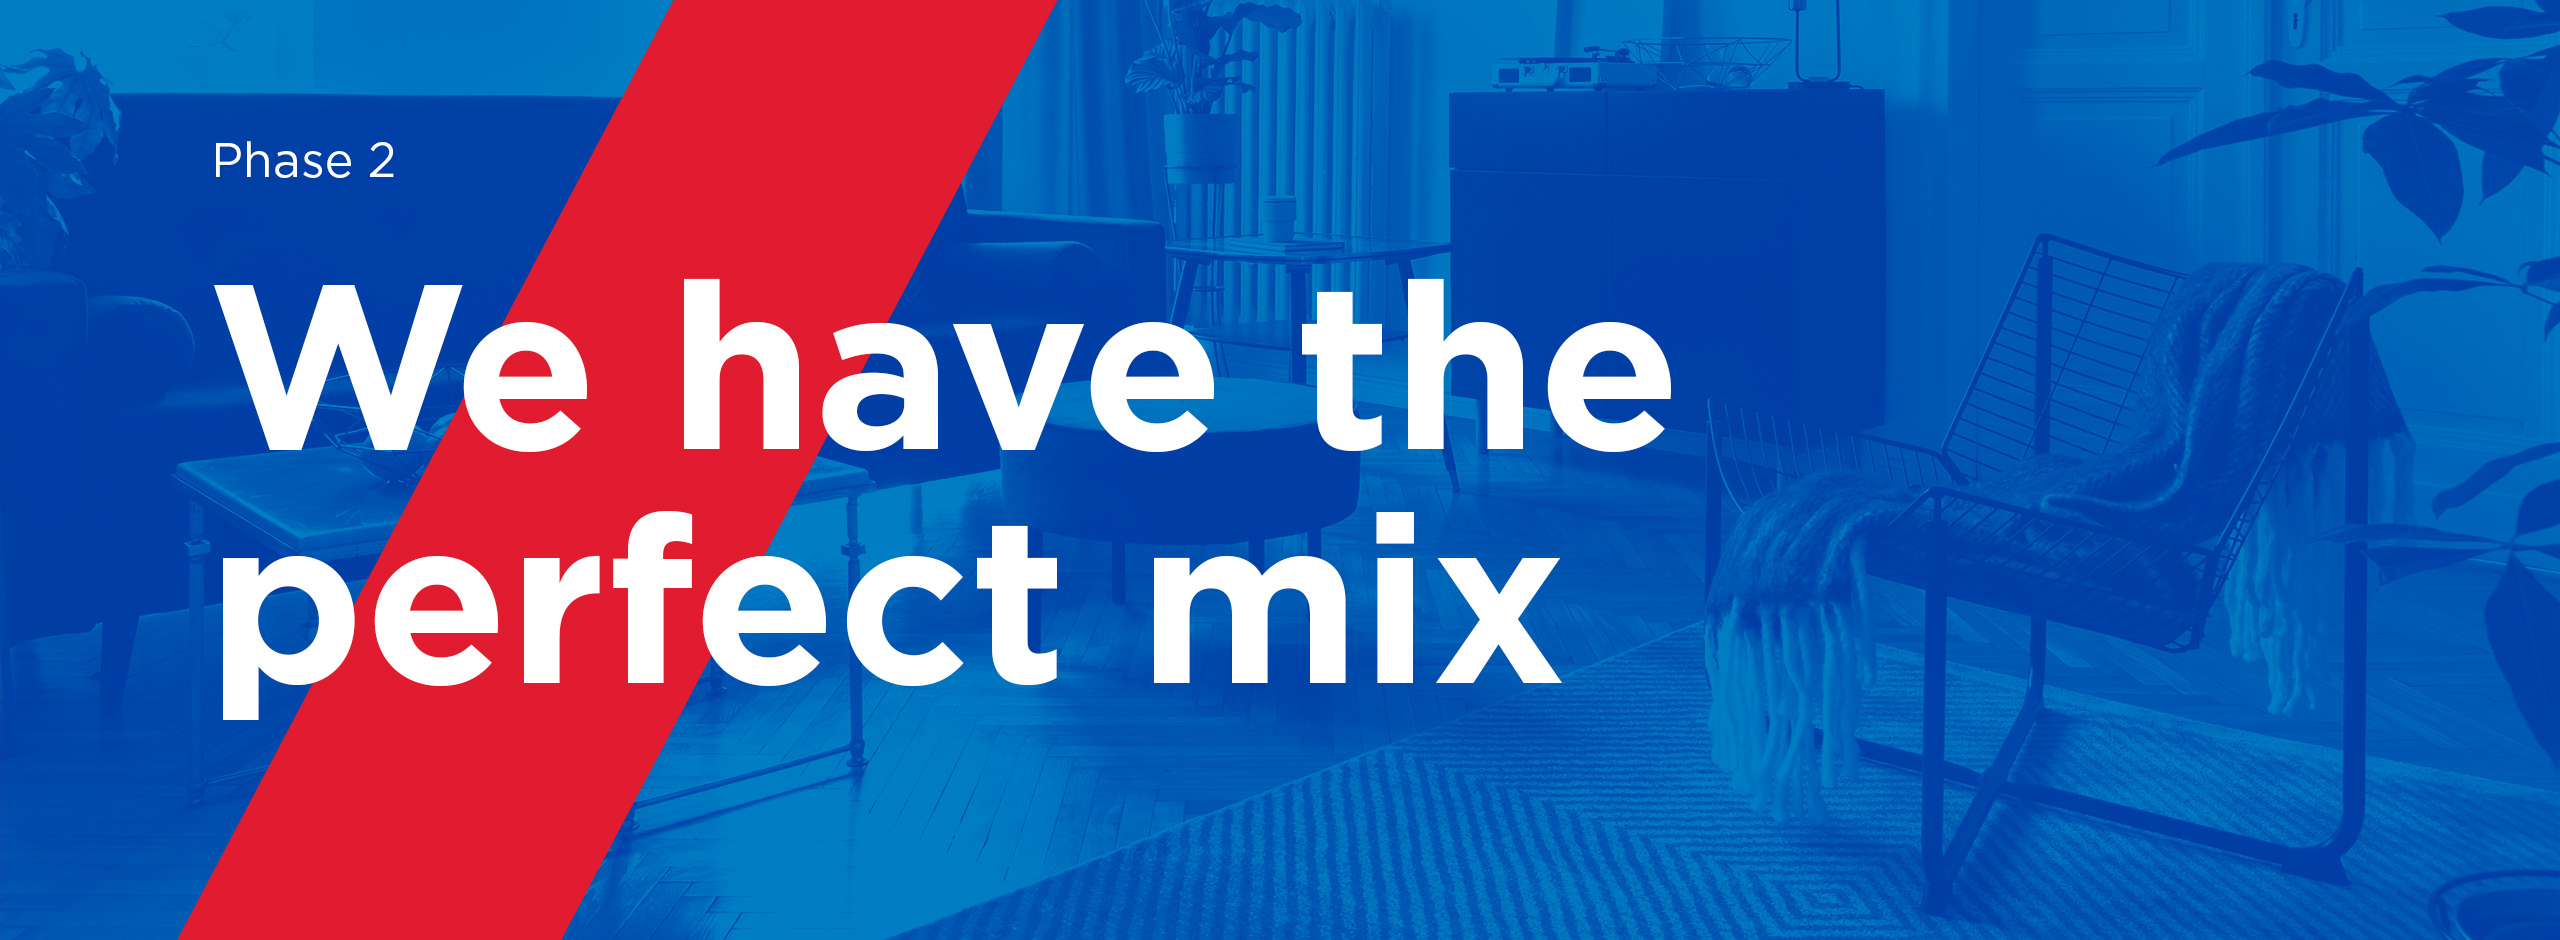 REMAX We have the perfect mix